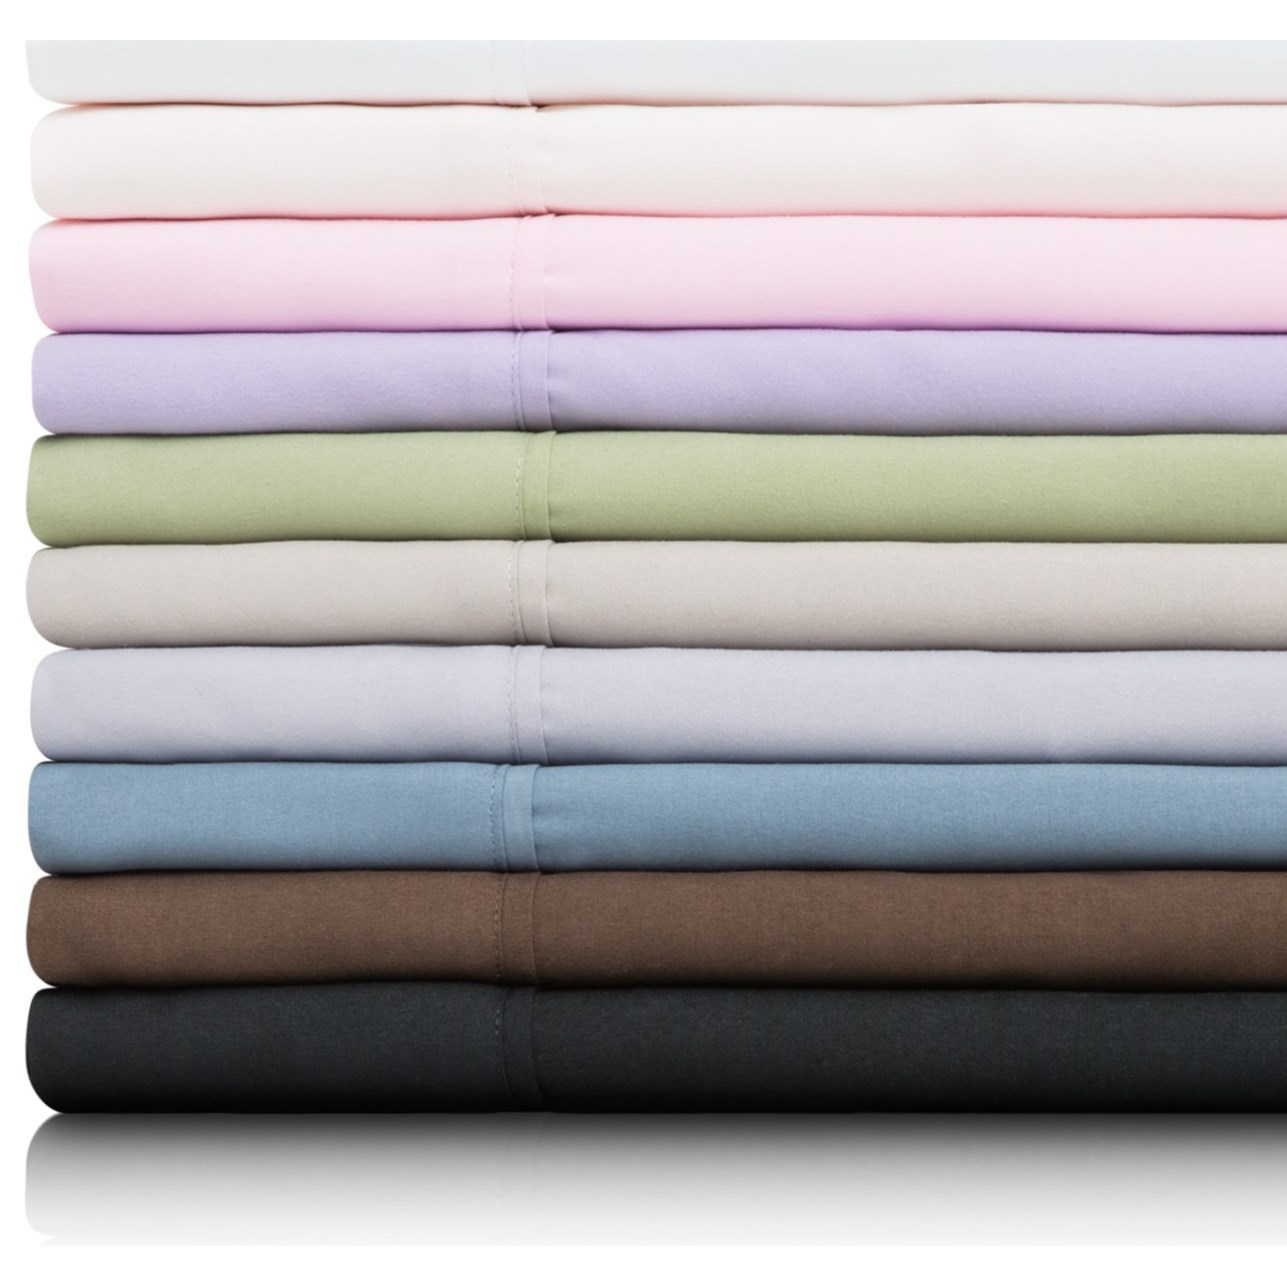 Full Woven™ Brushed Microfiber Sheet Set